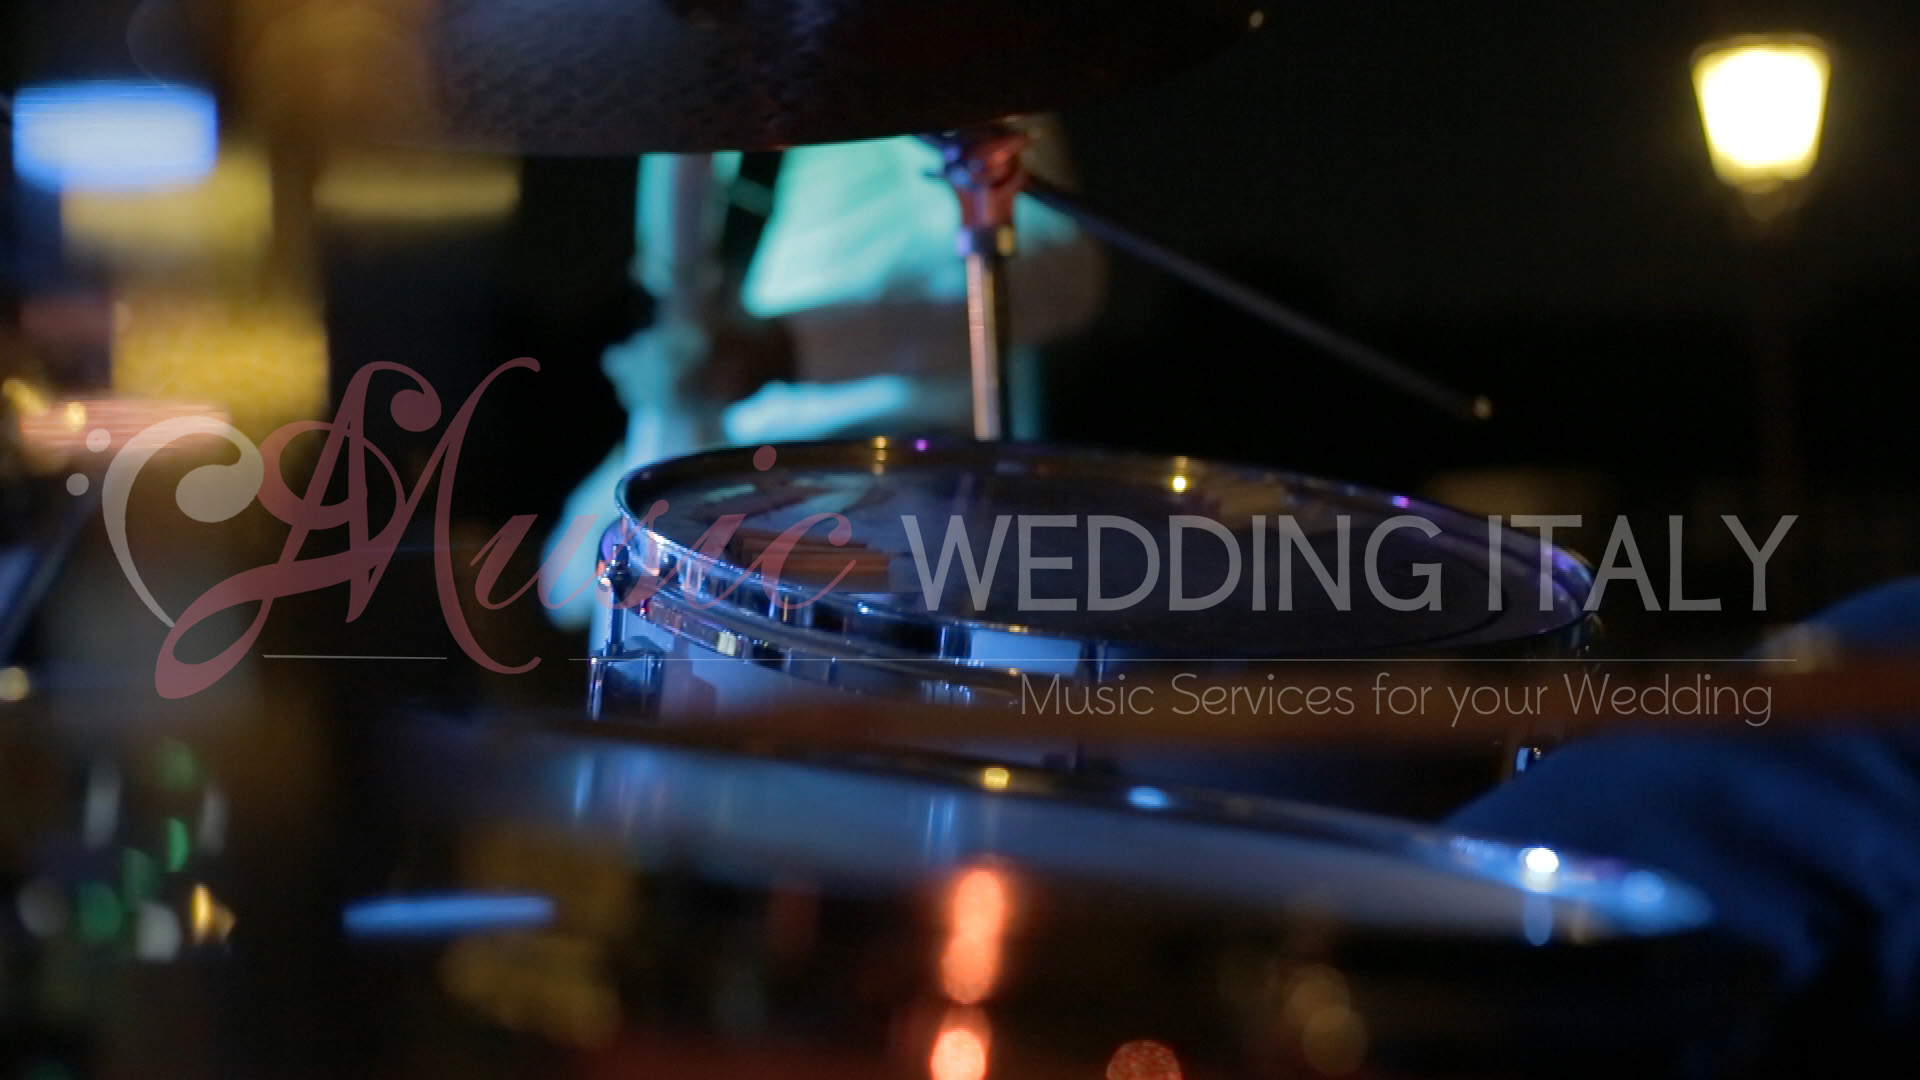 wedding band Rome, wedding band italy, drum and percussion for your wedding in italy